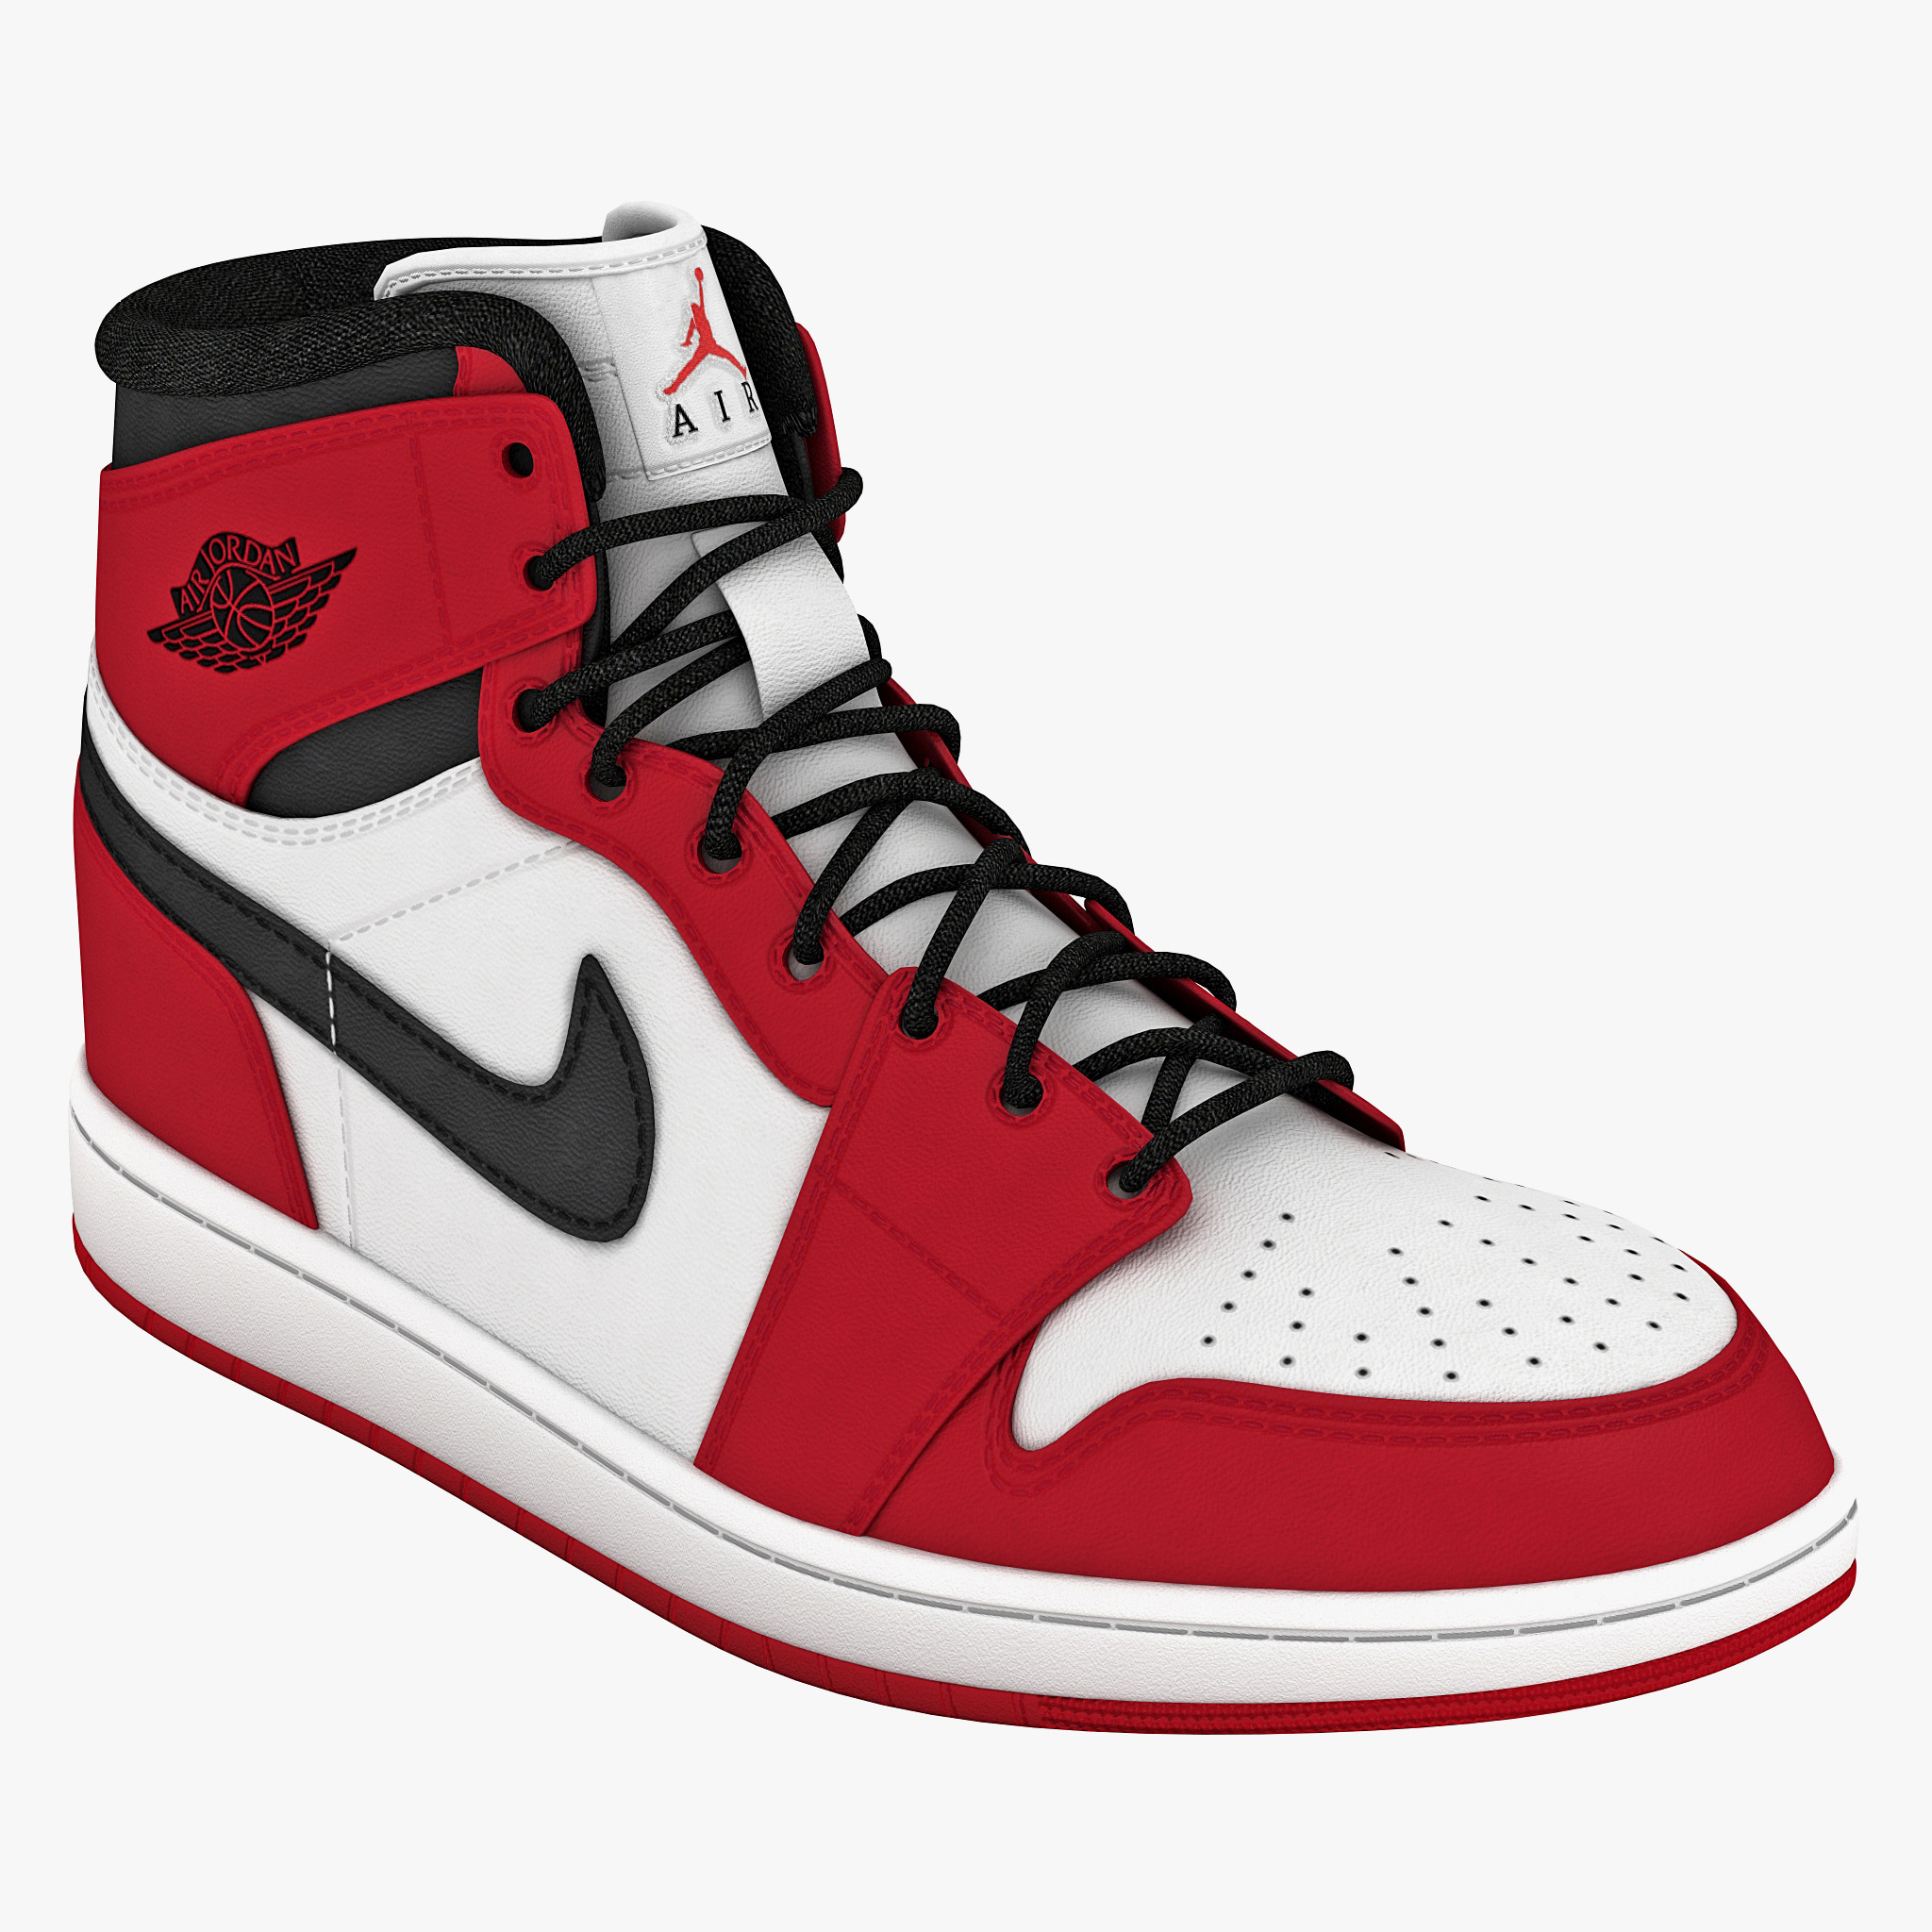 3d model shoes air jordans 1